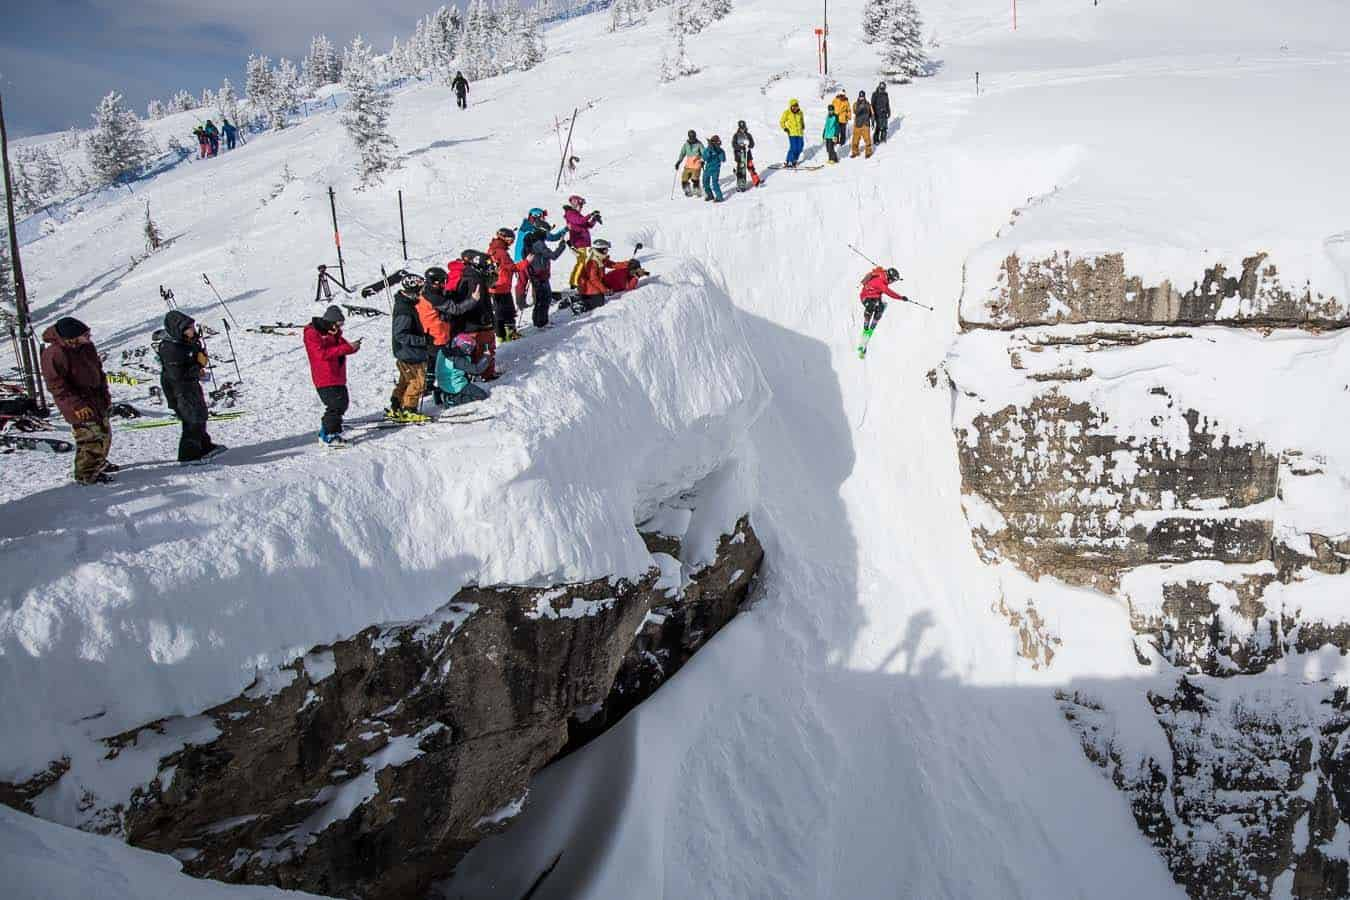 8 of the steepest and scariest ski runs in the world